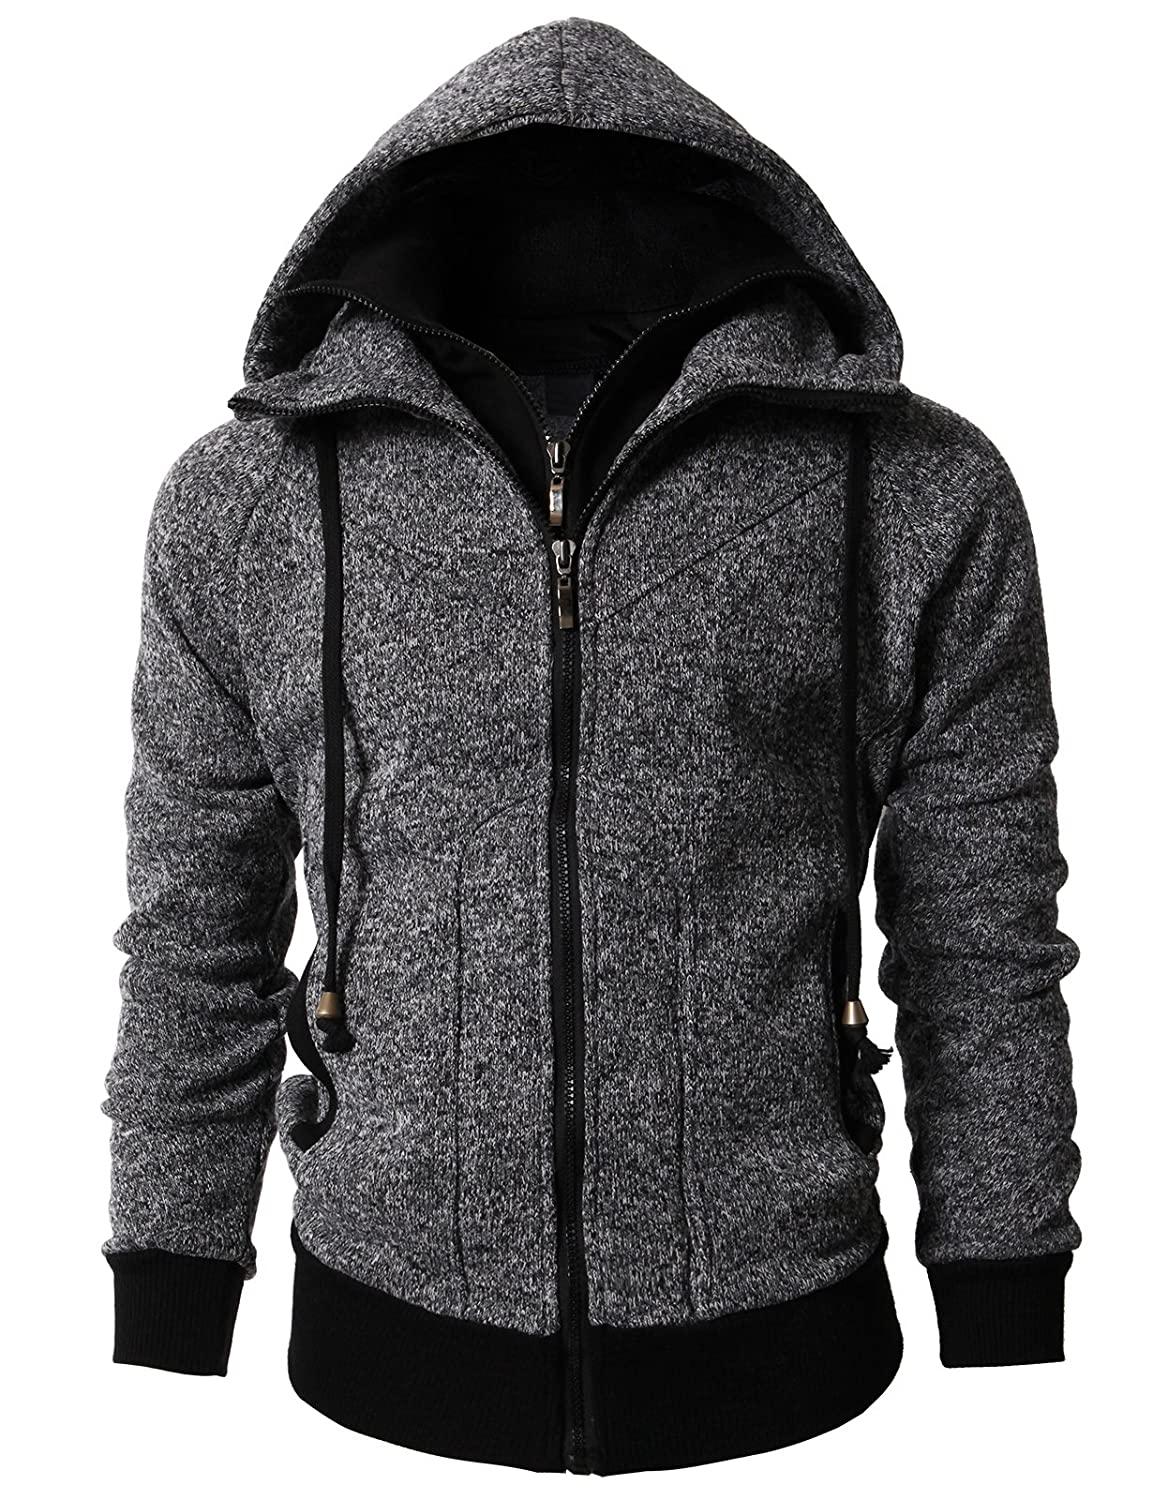 H2H Mens Casual Slim Fit Hoodie Jackets Double Zipper Closer with Pockets